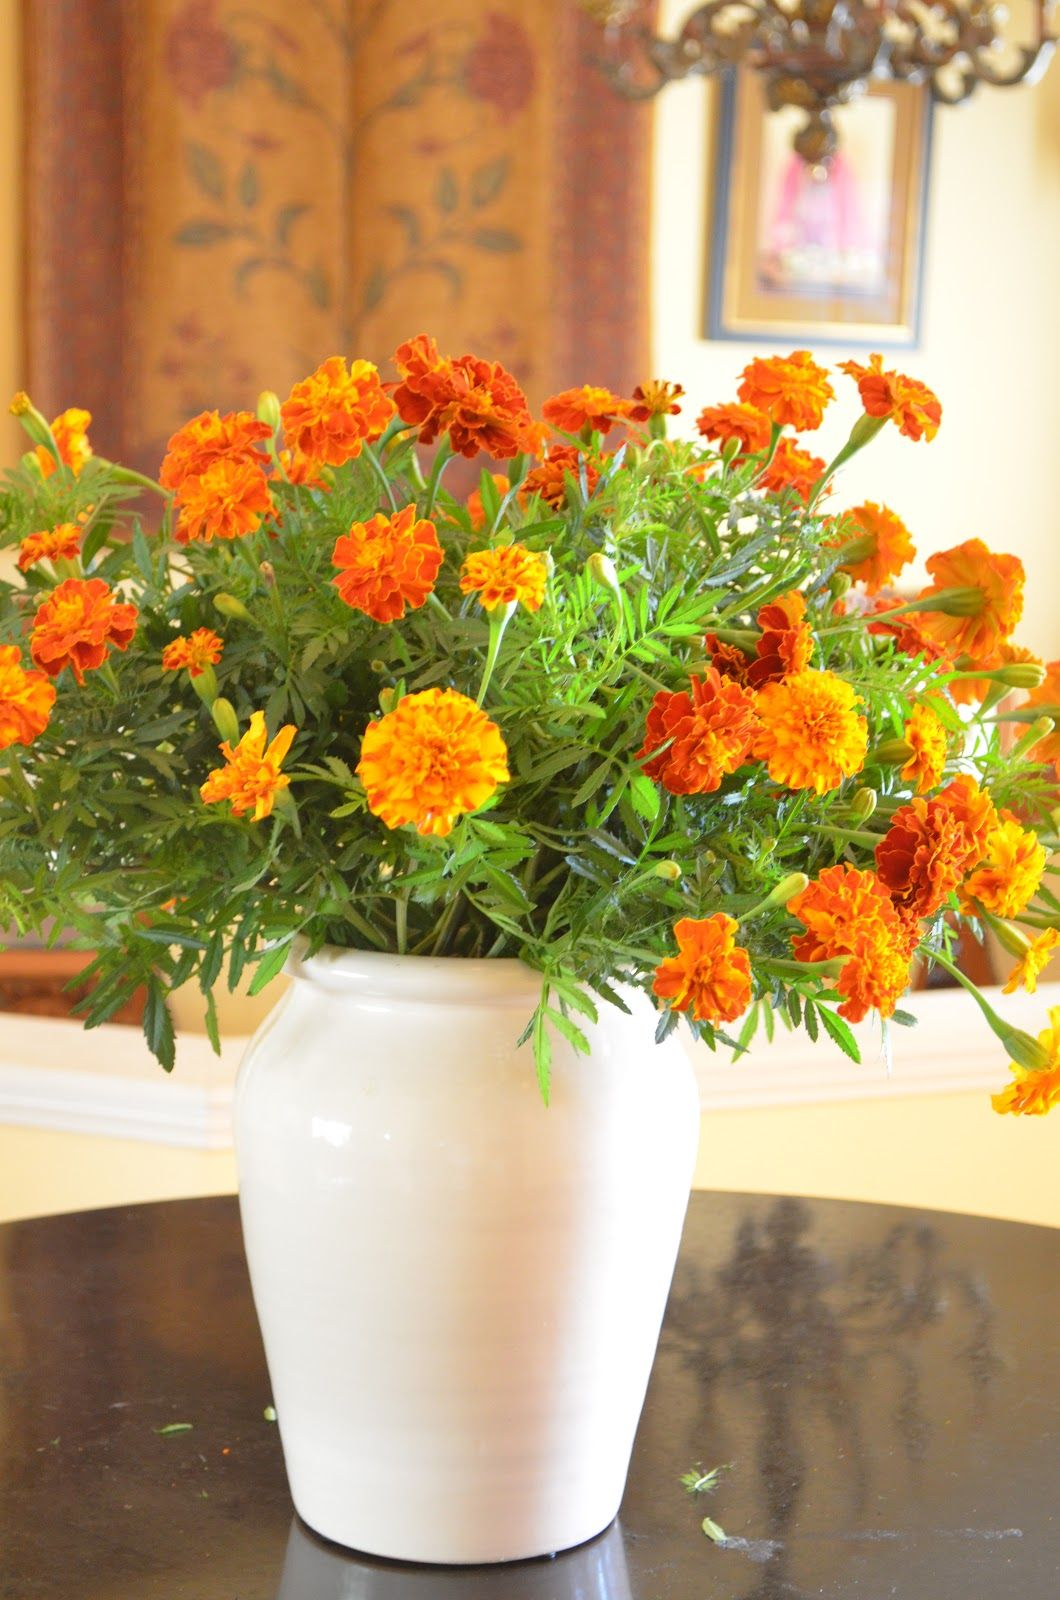 Pin by 𝒜𝒥ℳ on Marigold Cottage Marigold, Flower